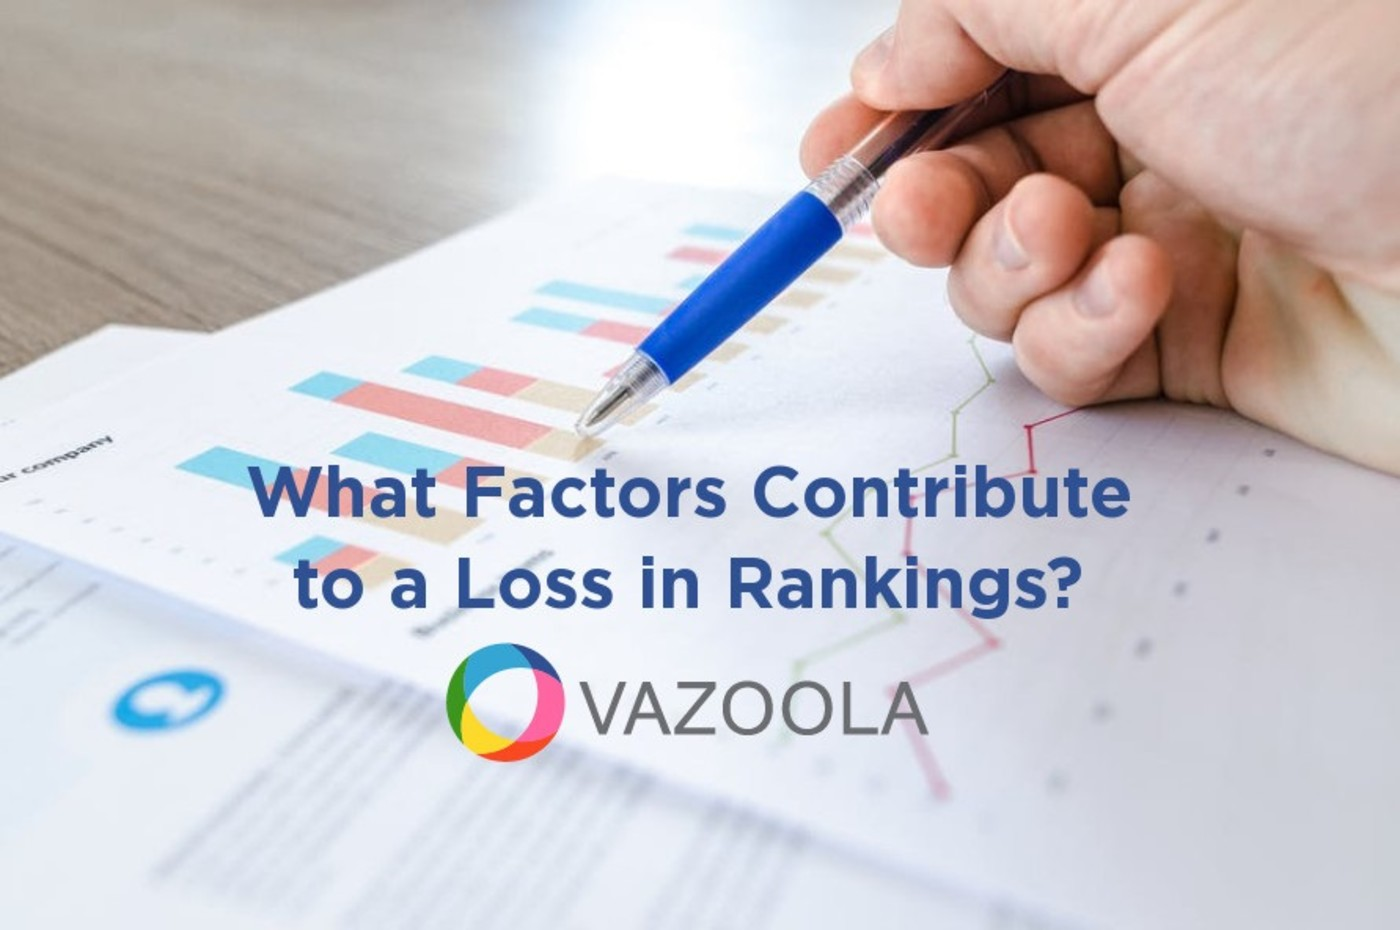 What Factors Contribute to a Loss in Rankings?